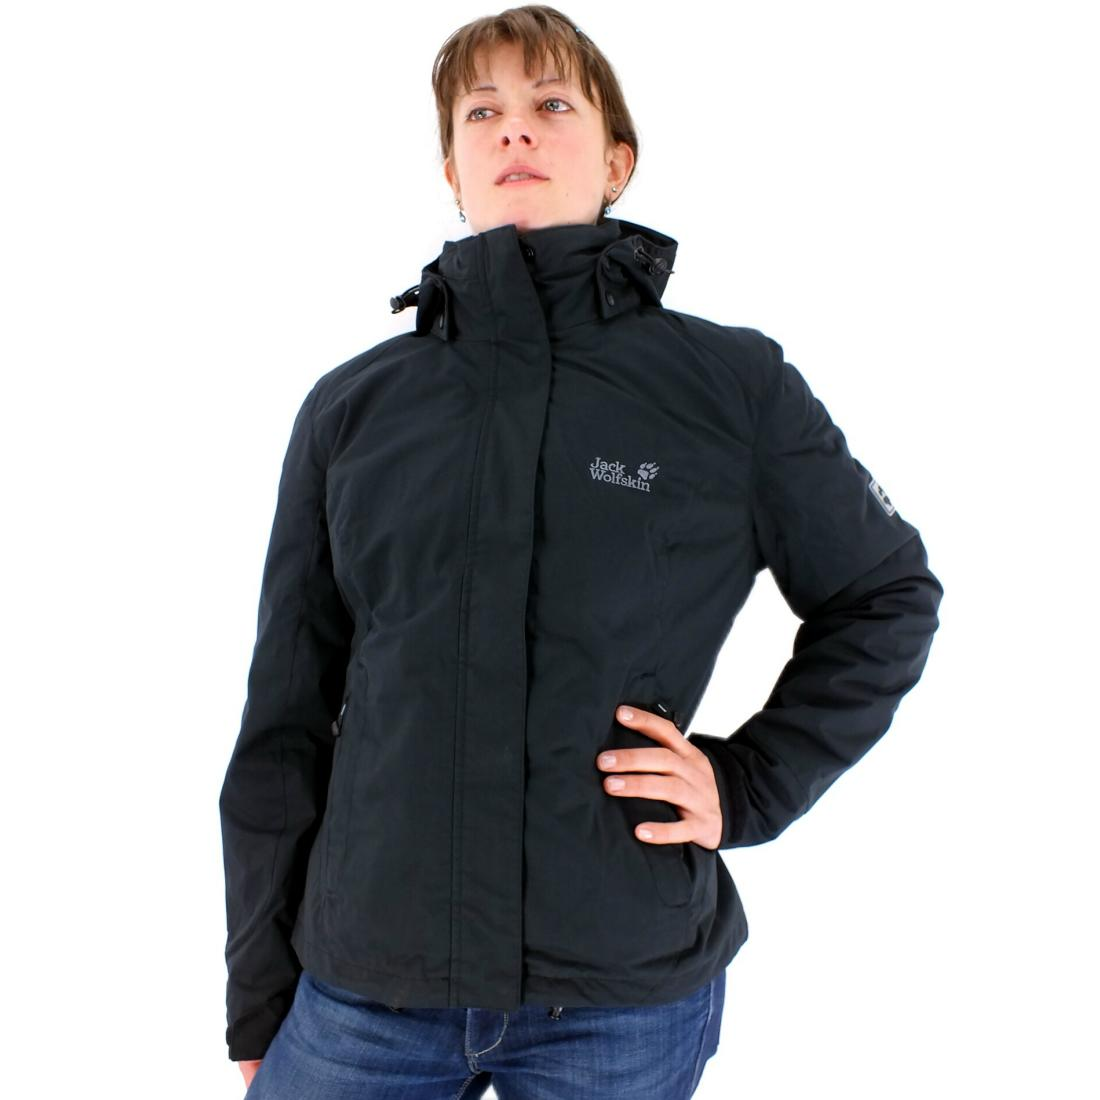 jack wolfskin central park women l damen jacke 3 in 1 schwarz neu ebay. Black Bedroom Furniture Sets. Home Design Ideas